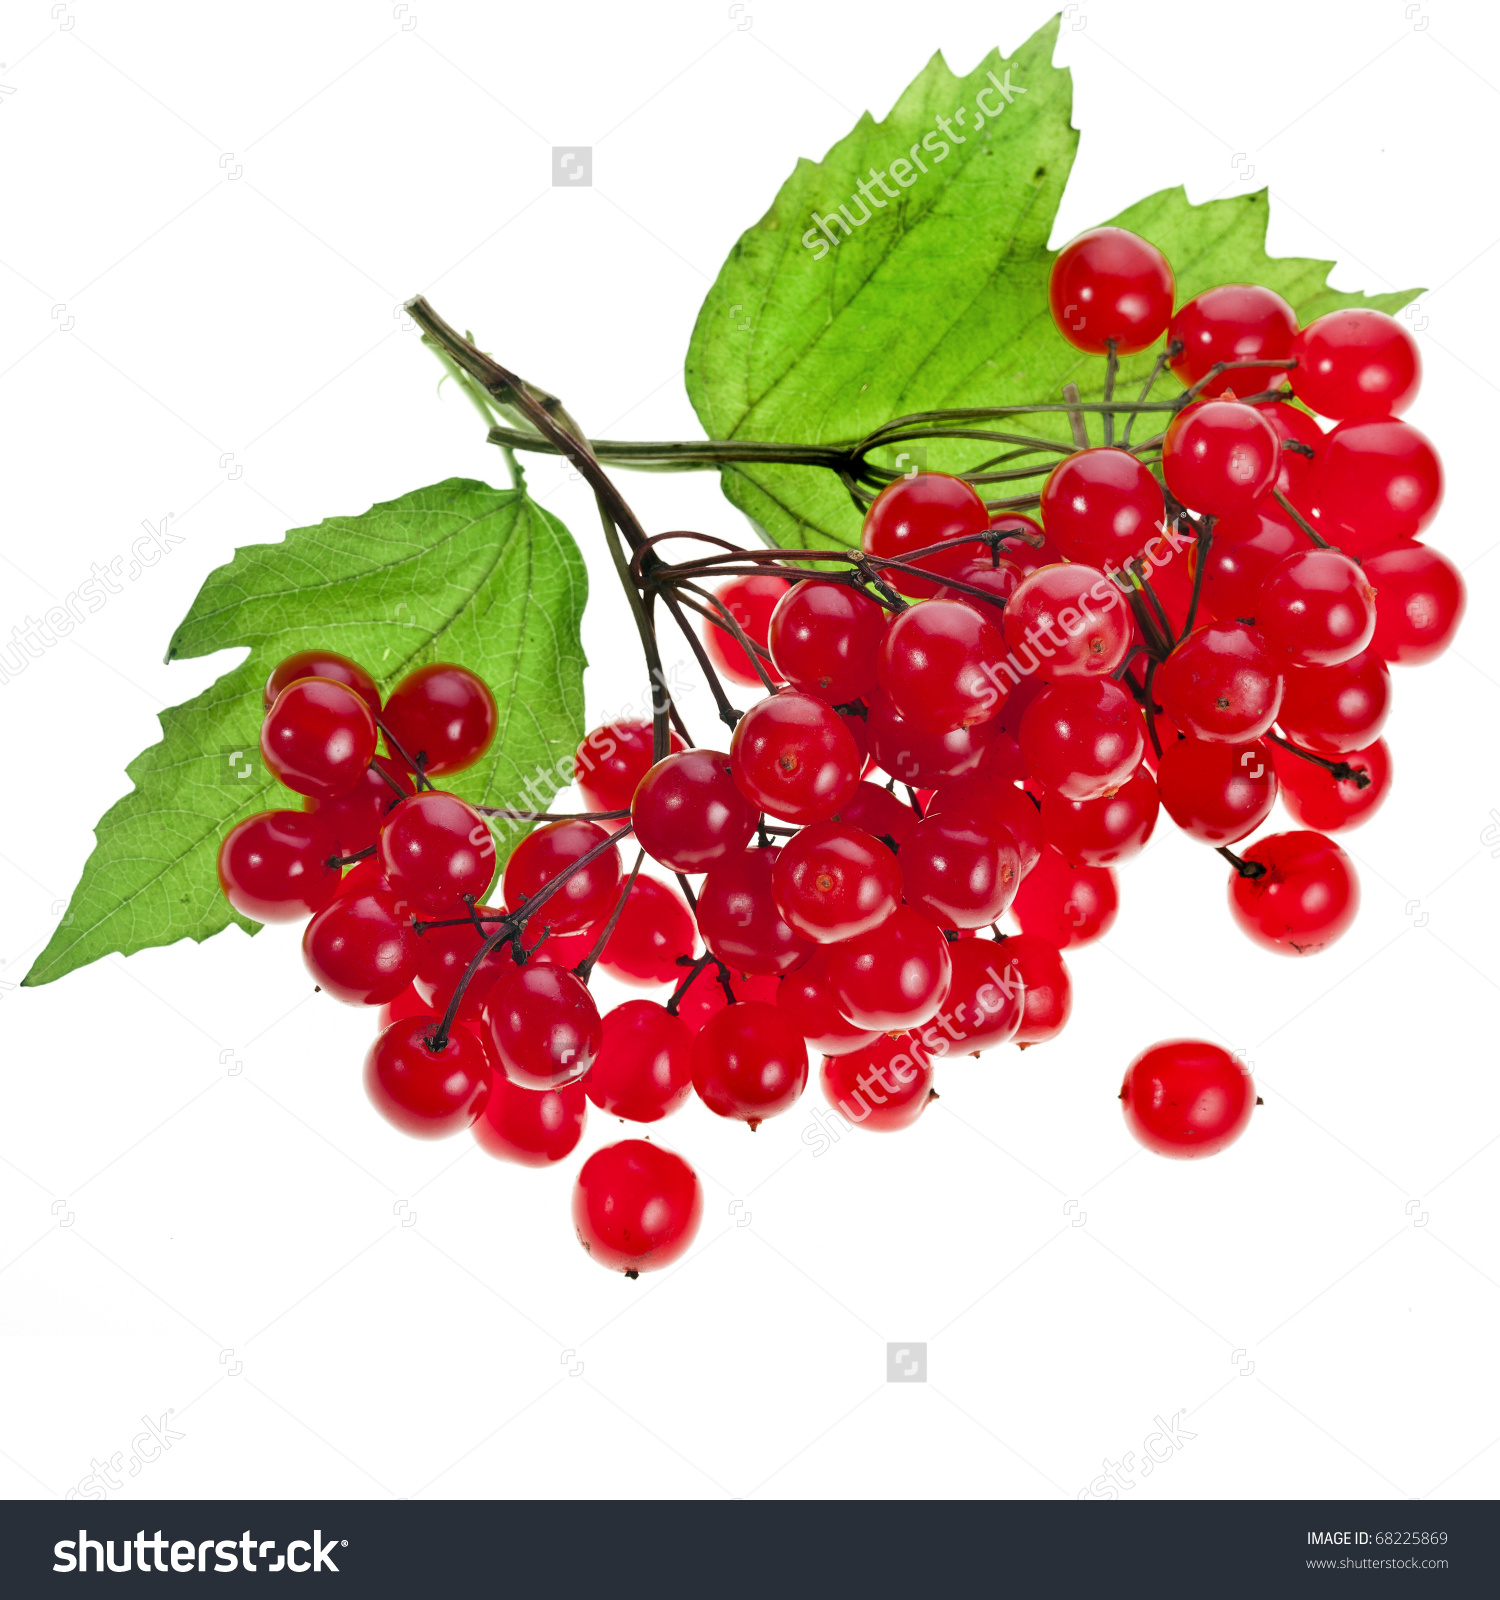 Red Berries Viburnum Arrow Wood Isolate Stock Photo 68225869.